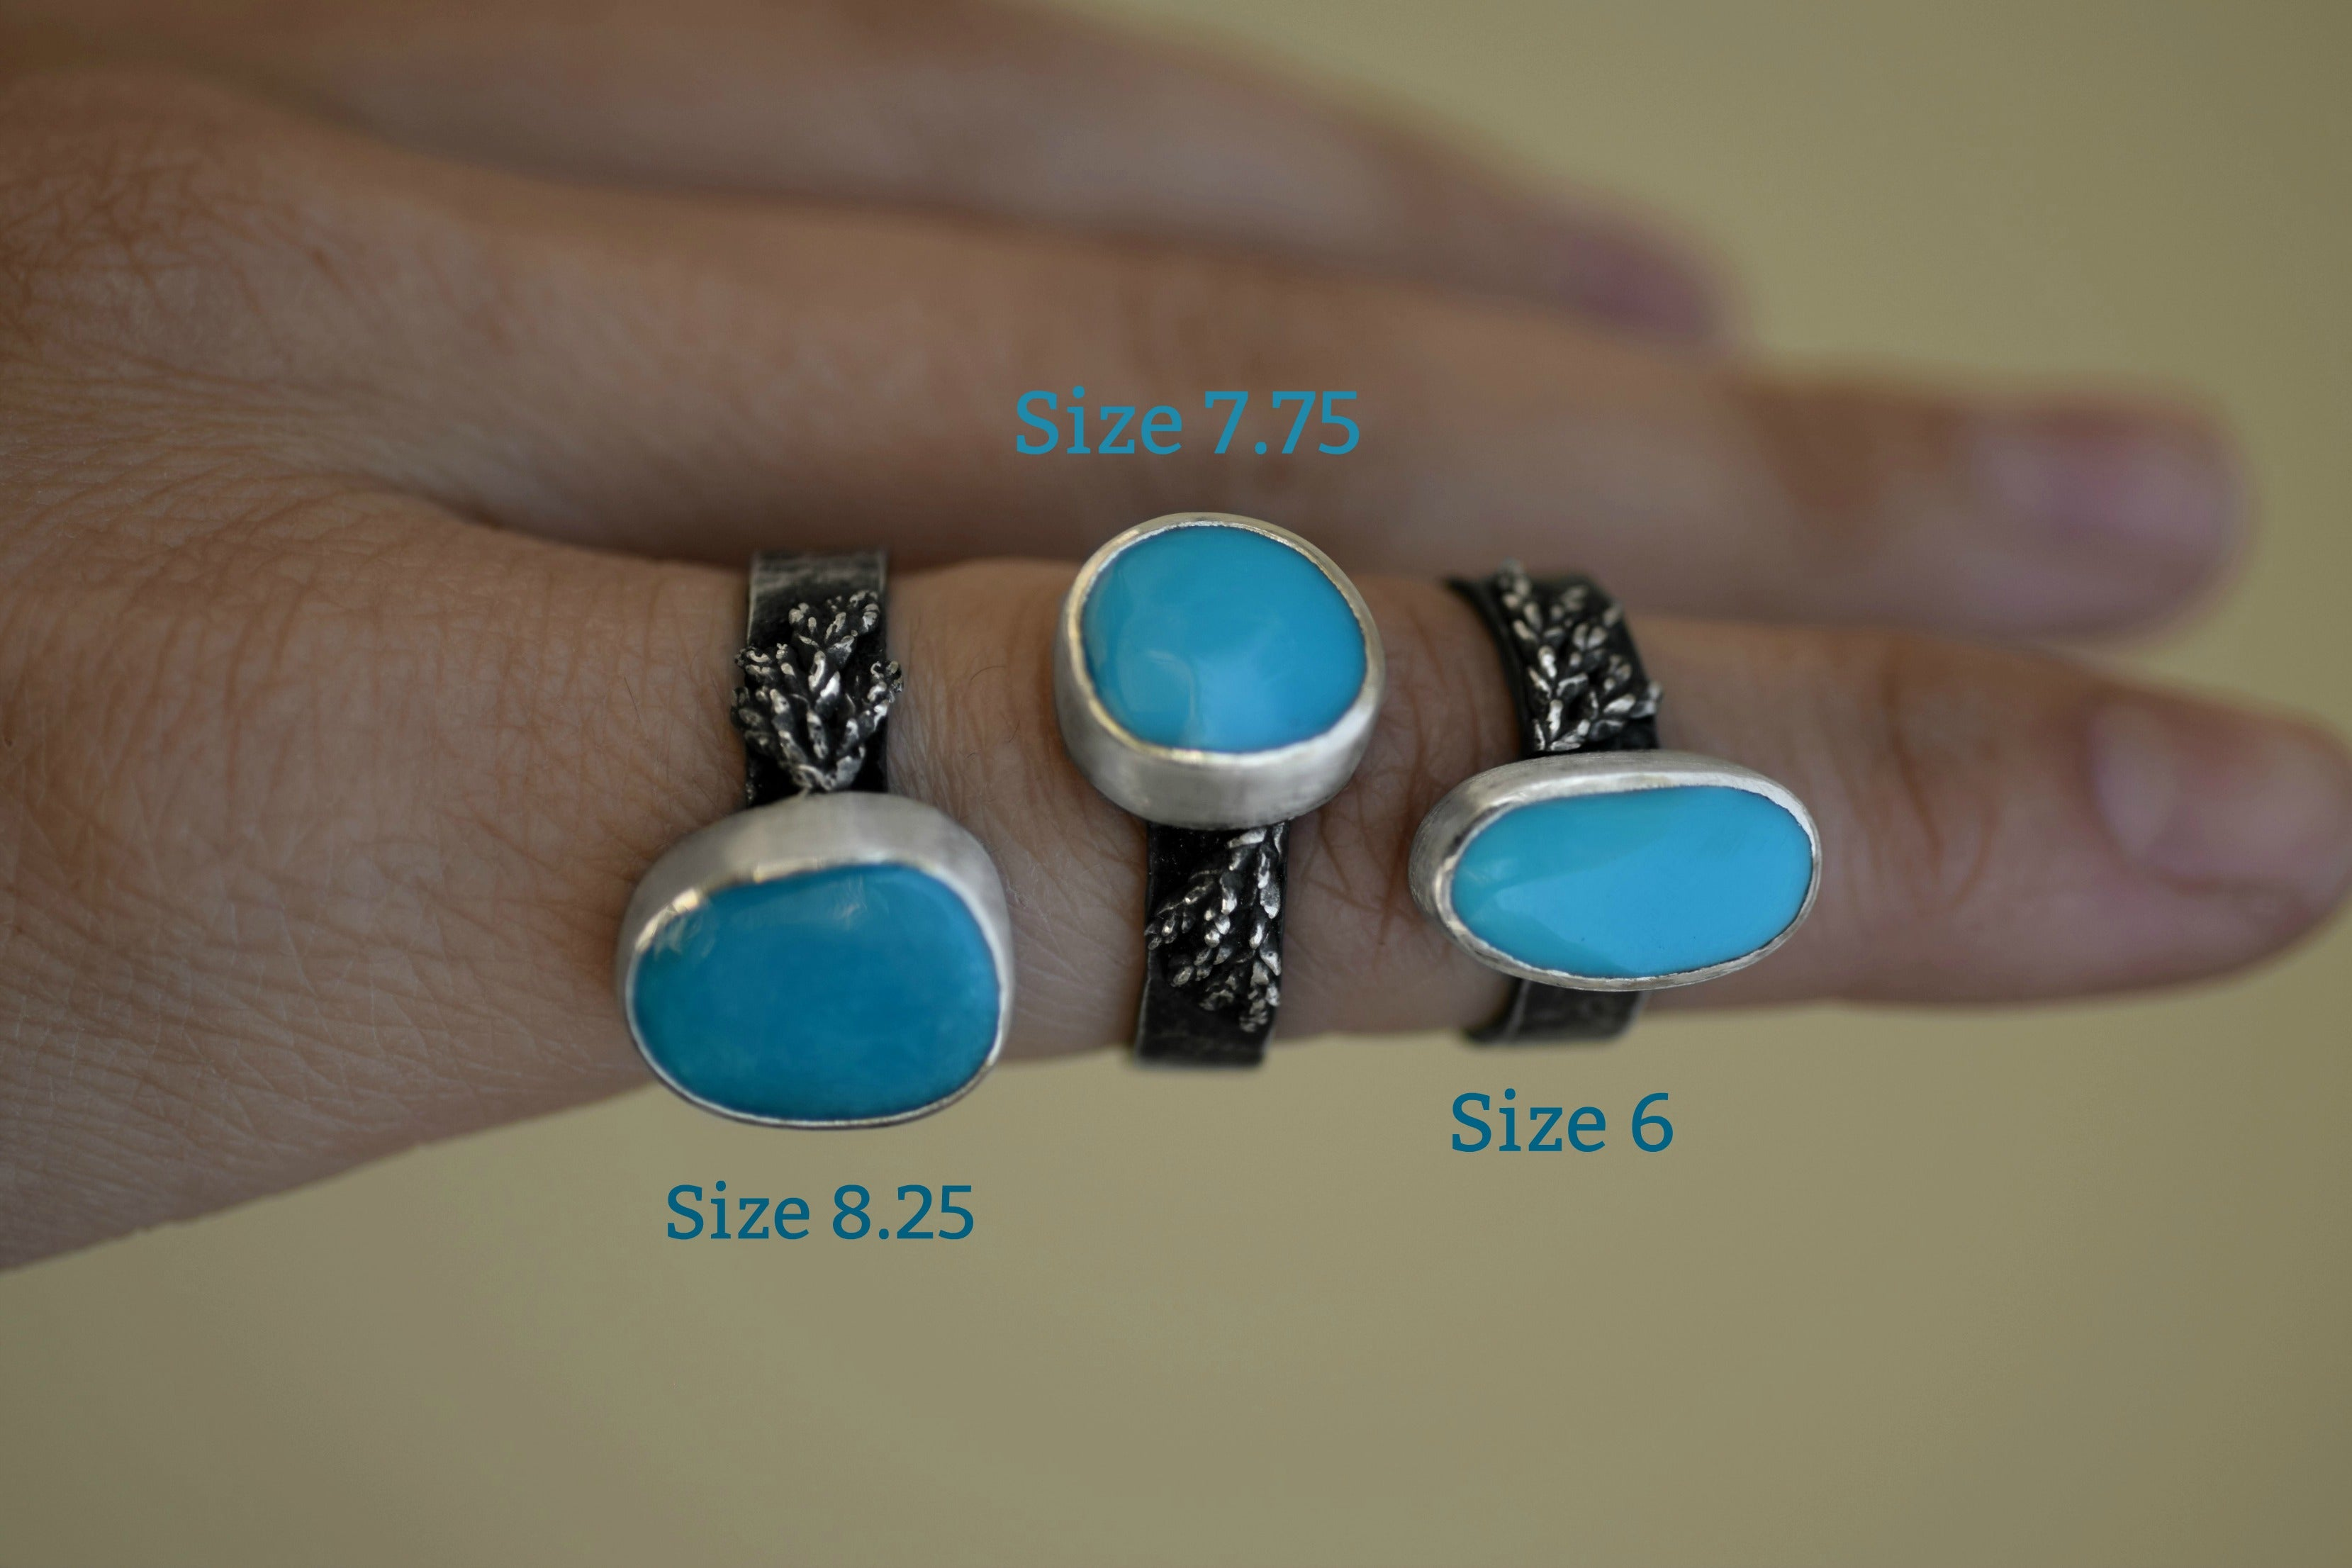 XSleeping Beauty Turquoise Ring -Double Ferns - Silver and Turquoise - Size 8.25 - Turquoise Ring - Real Cast Fern - Woodland Ring